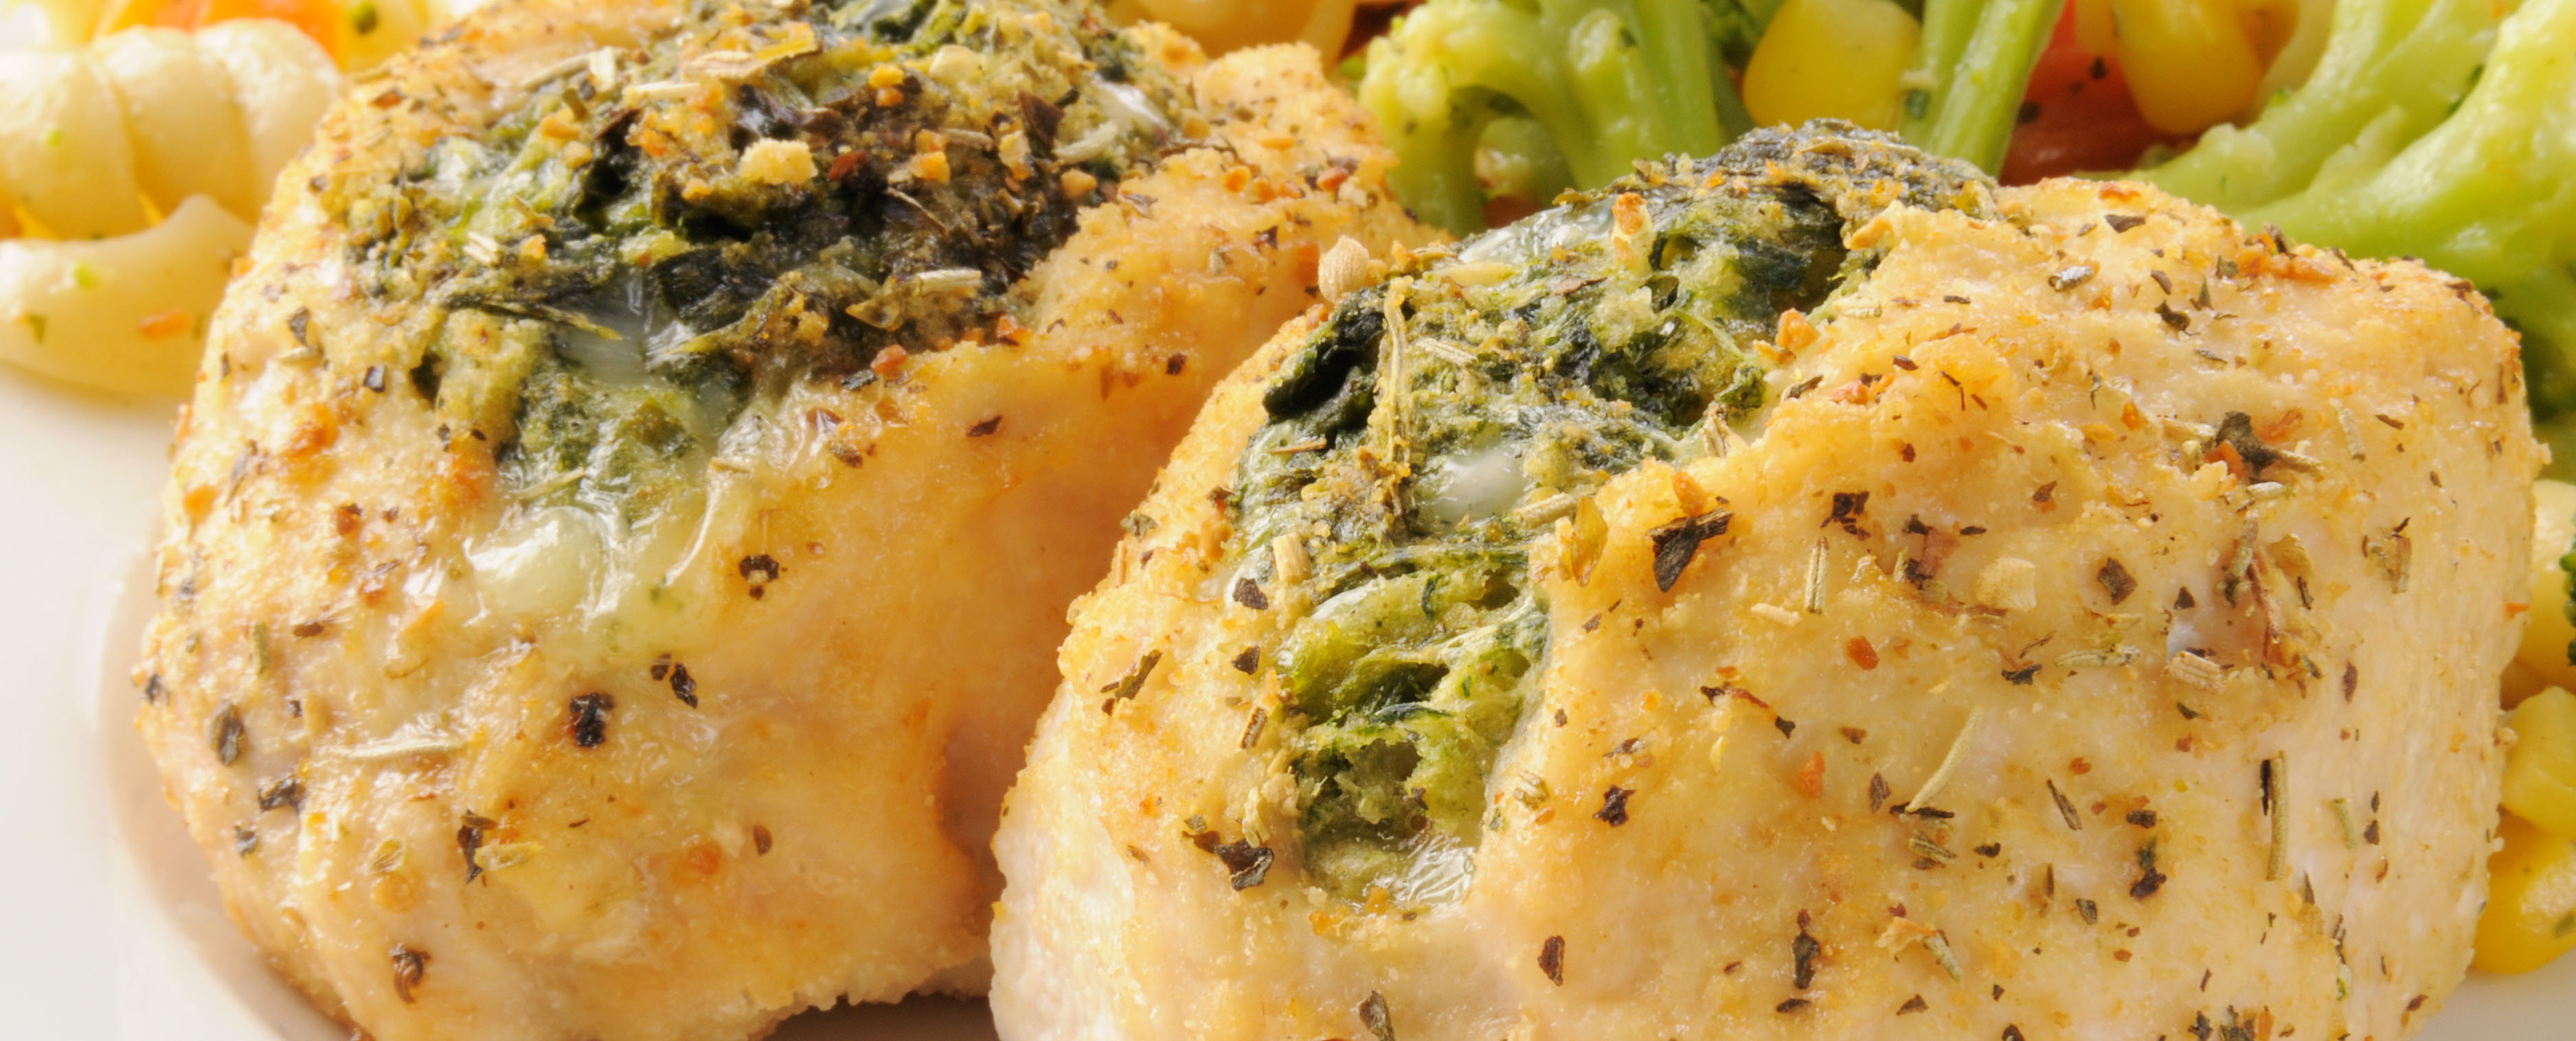 Broccoli & Cheddar Stuffed Chicken